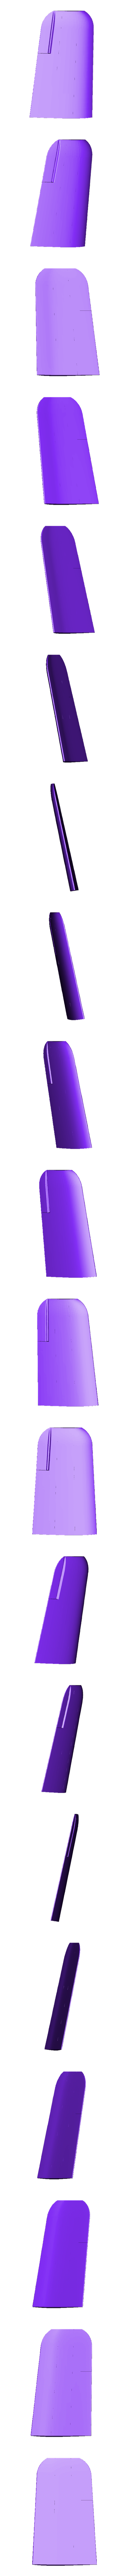 Left UWing Outer.stl Download free STL file Flyer Mk. 1a Modifications • Object to 3D print, billbo1958